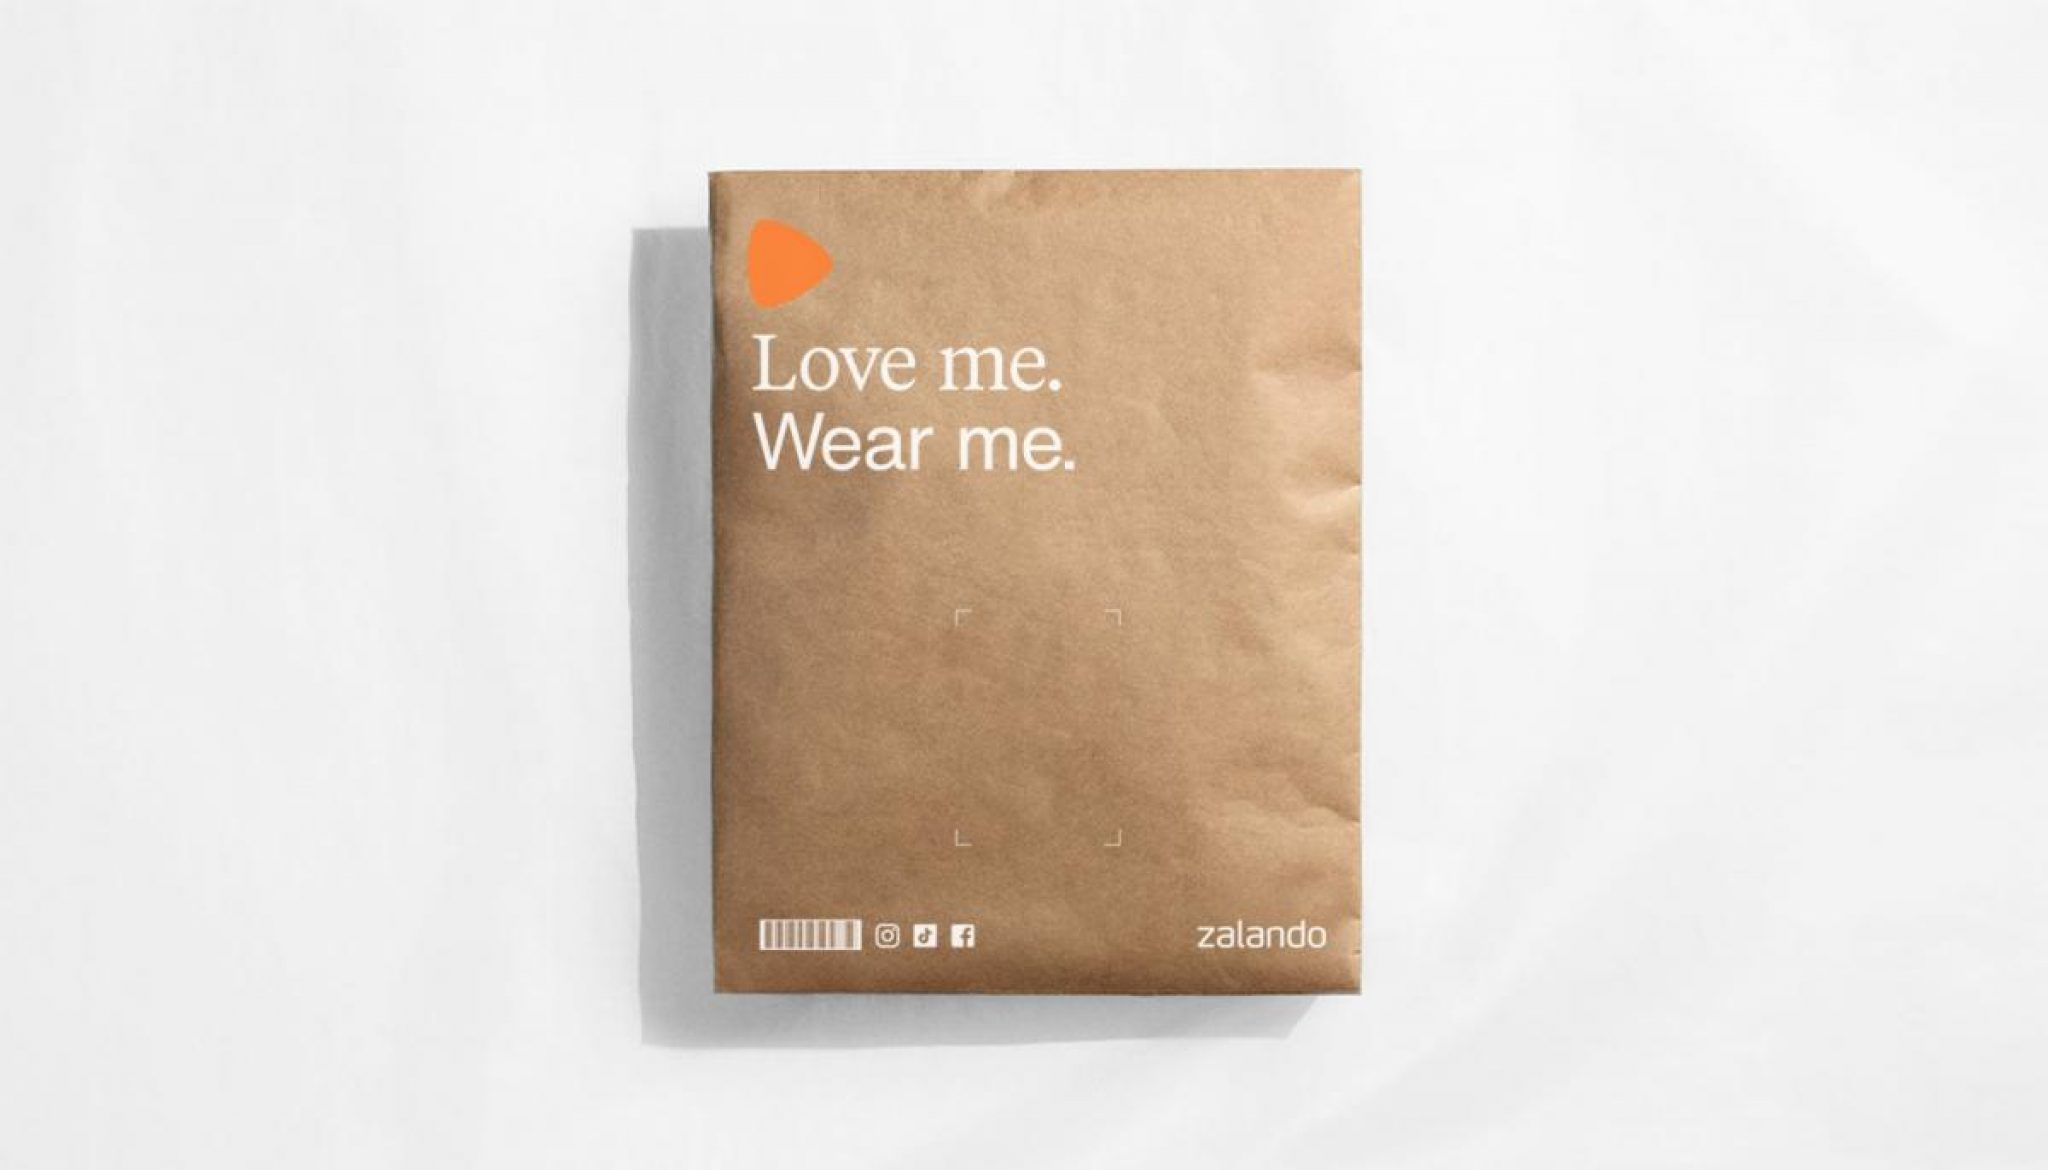 Zalando using recyclable paper bags for shipping